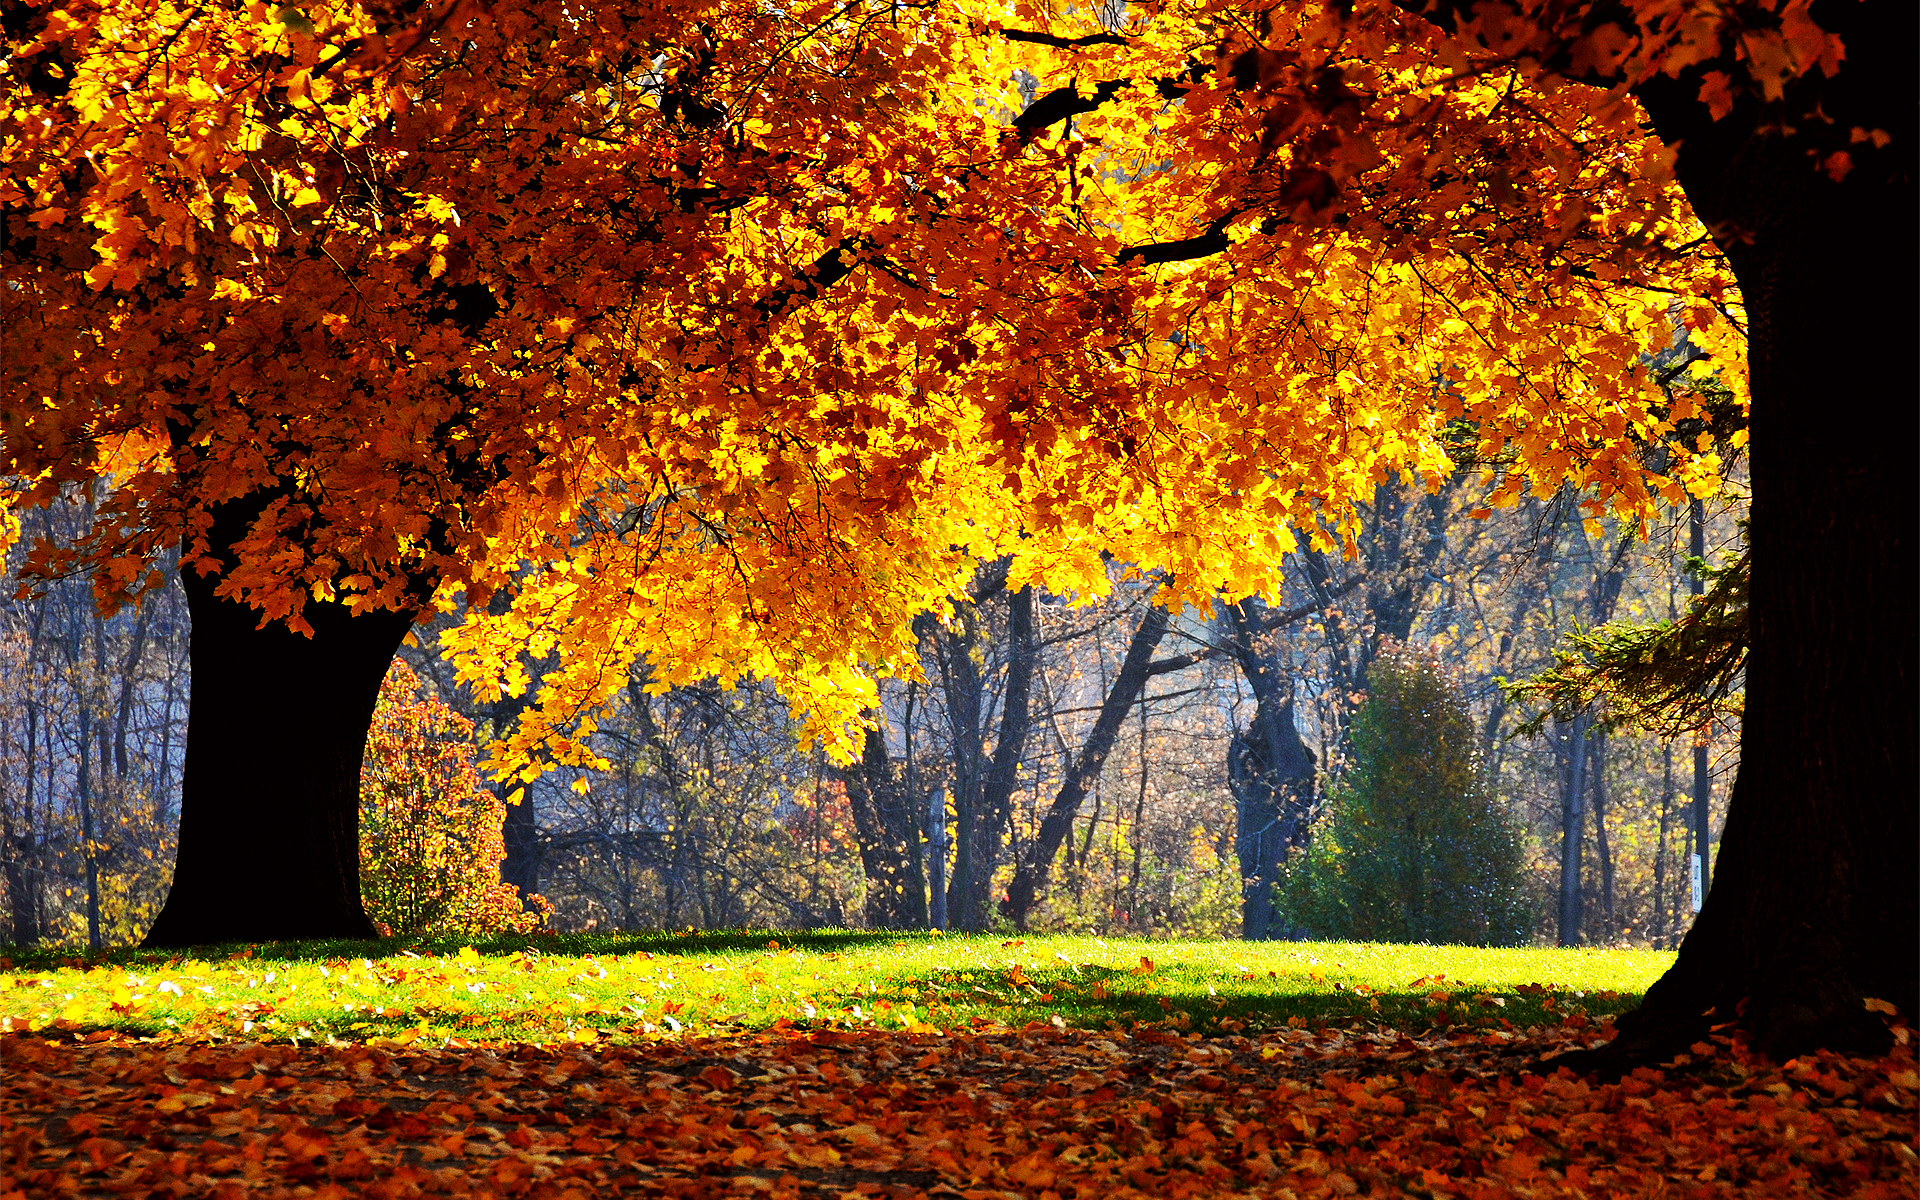 fall images for desktop